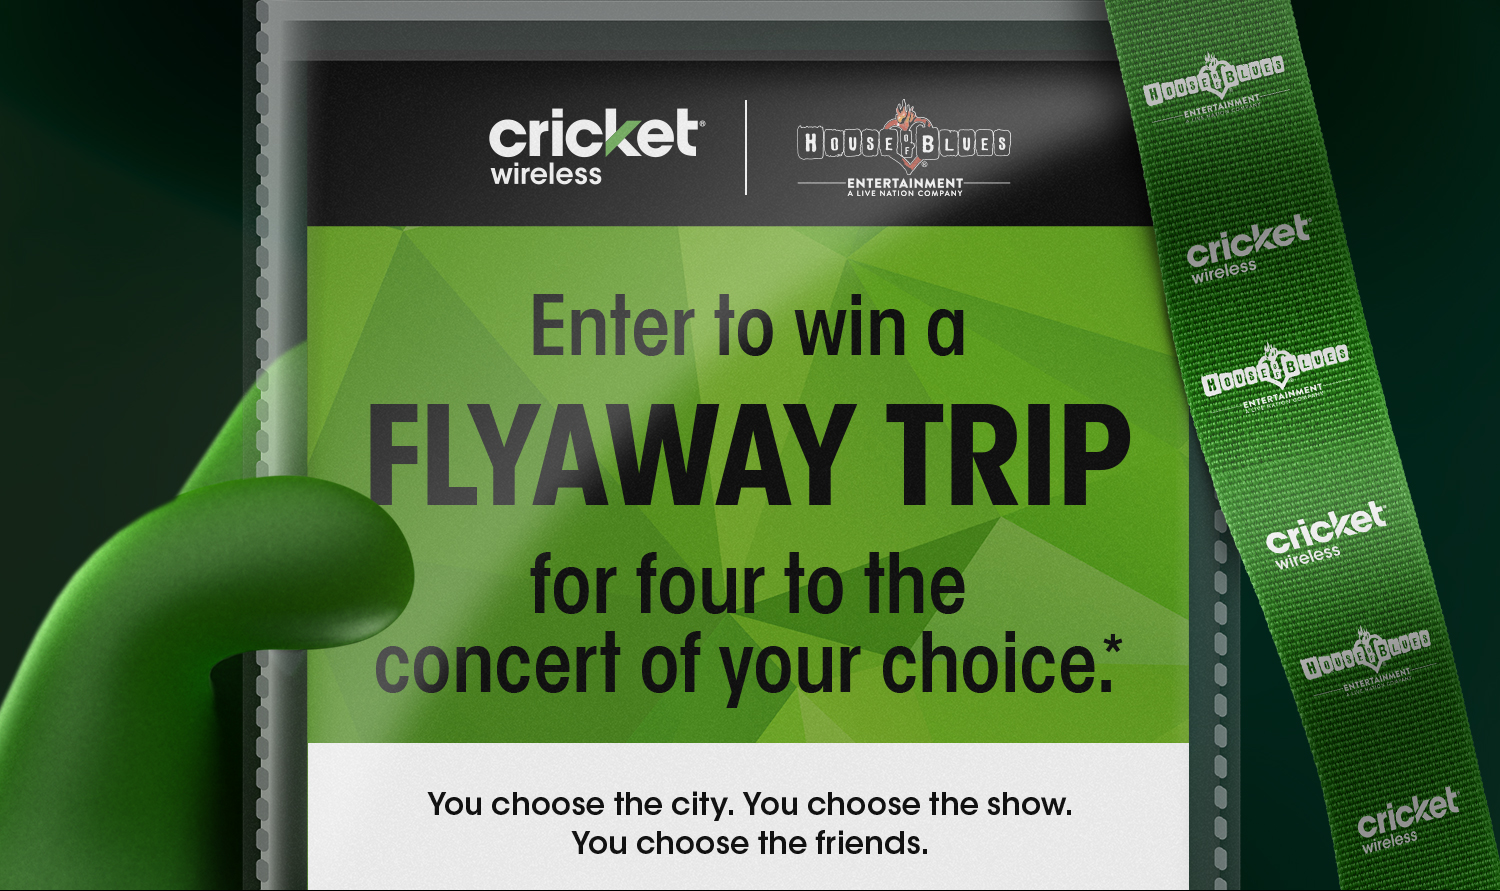 1 winner will receive a flyaway trip to see the concert of their choice